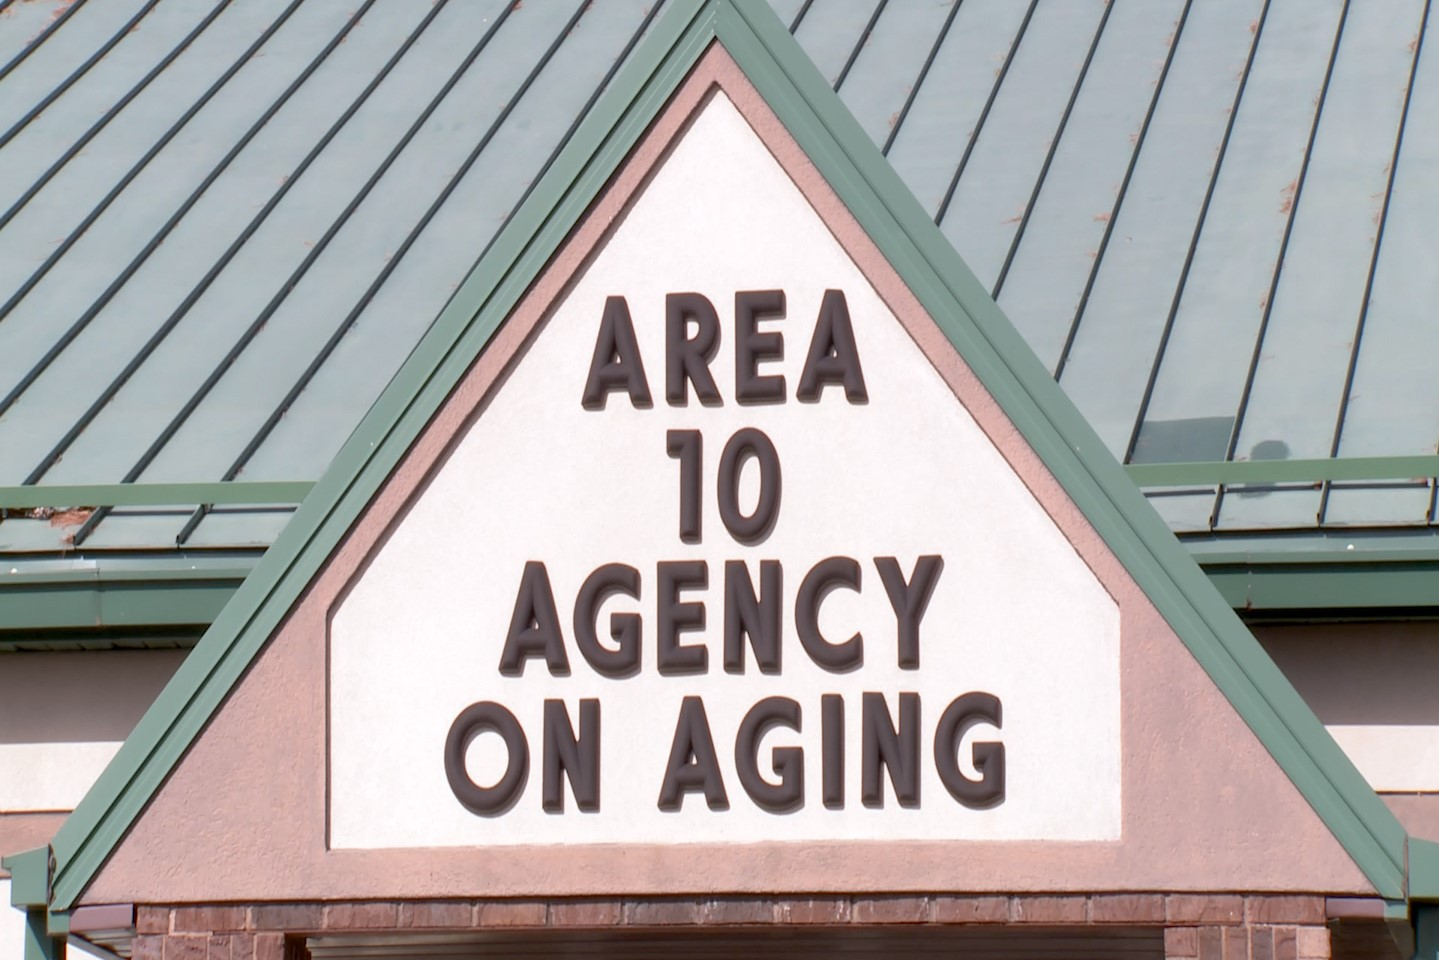 The sign for the Area 10 Agency on Aging in Ellettsville